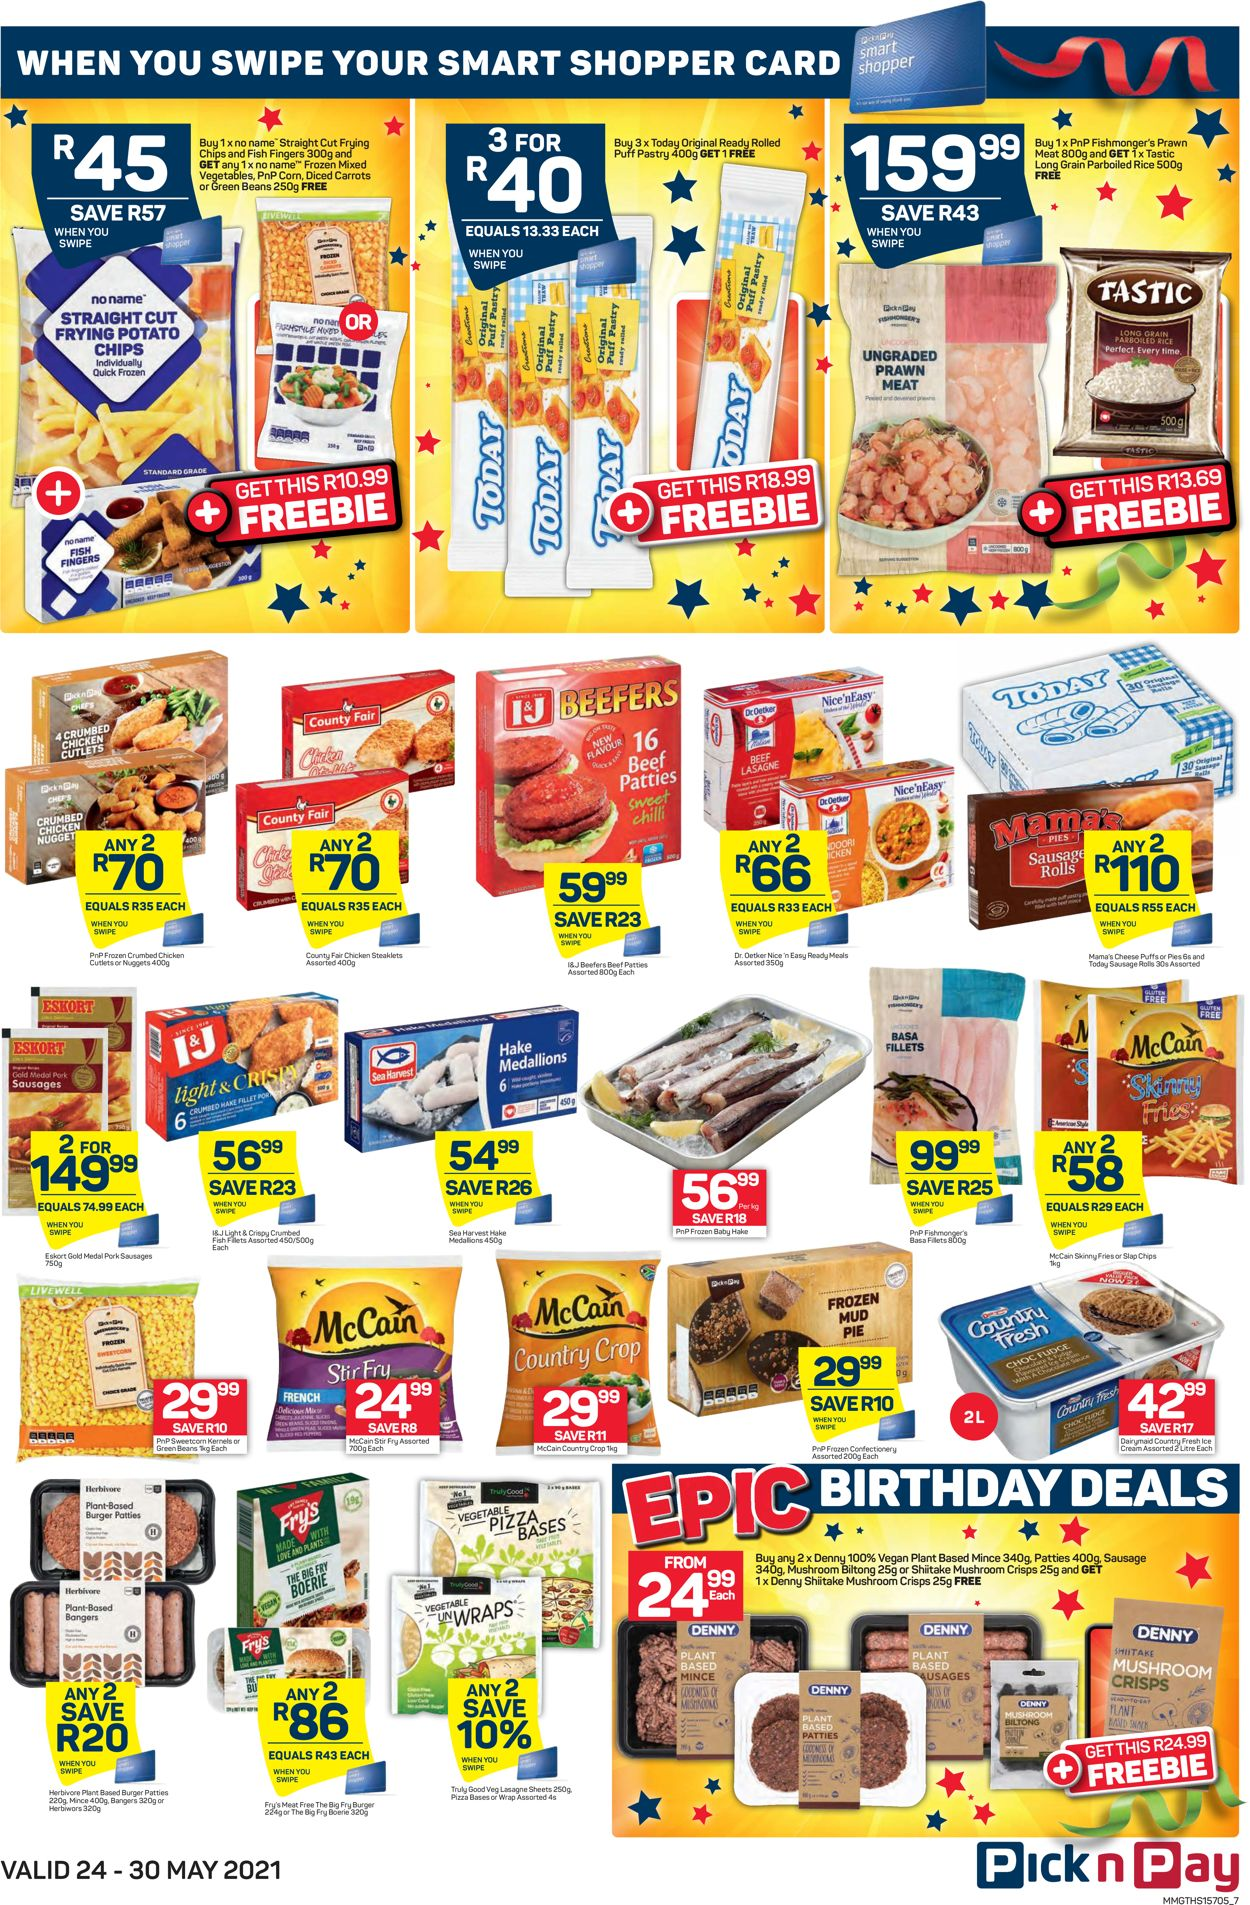 Pick n Pay Catalogue - 2021/05/24-2021/05/30 (Page 7)